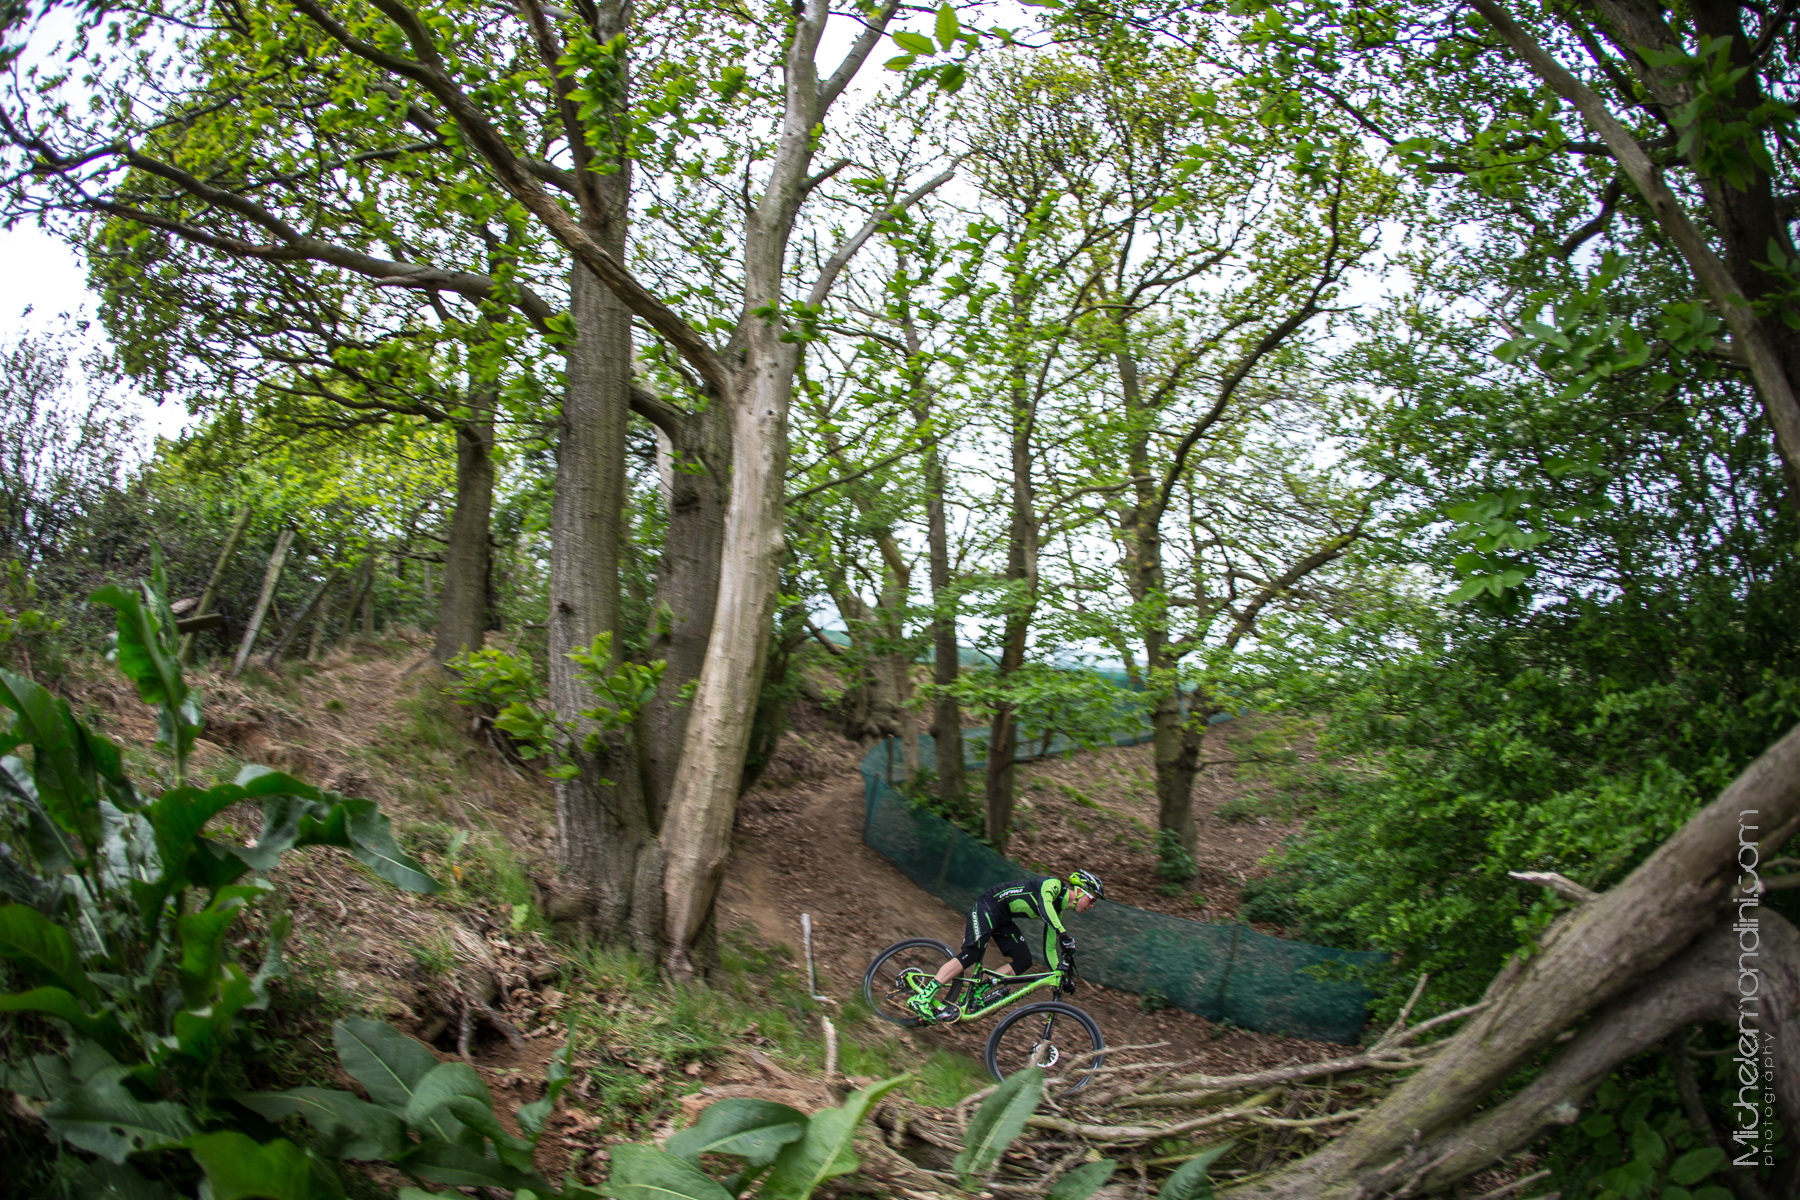 Looking for different angles in Hadleigh park - Michele Mondini